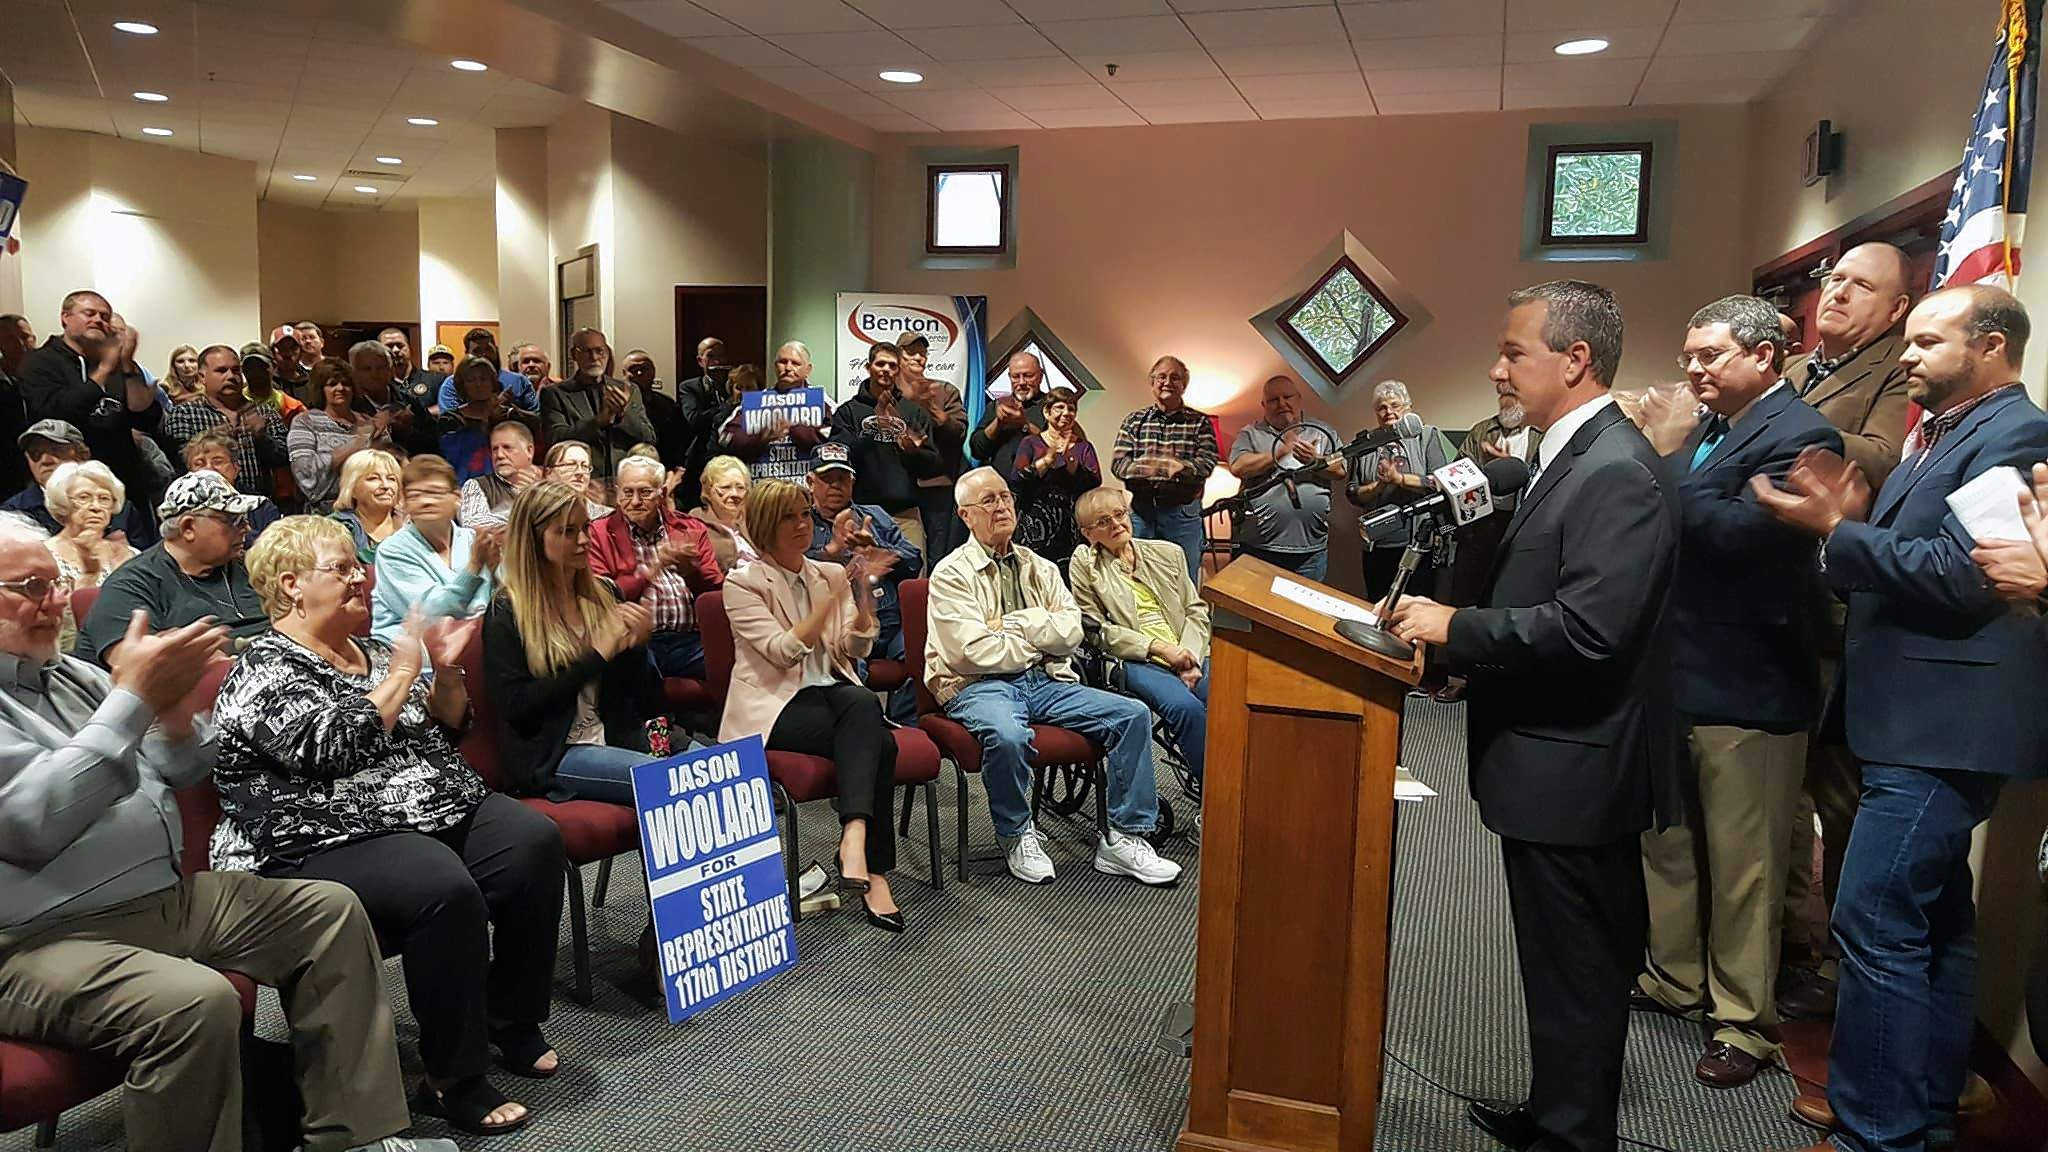 About 250 people gathered at the Benton Civic Center last night to hear Jason Woolard announce his candidacy for state representative in the 117th District.